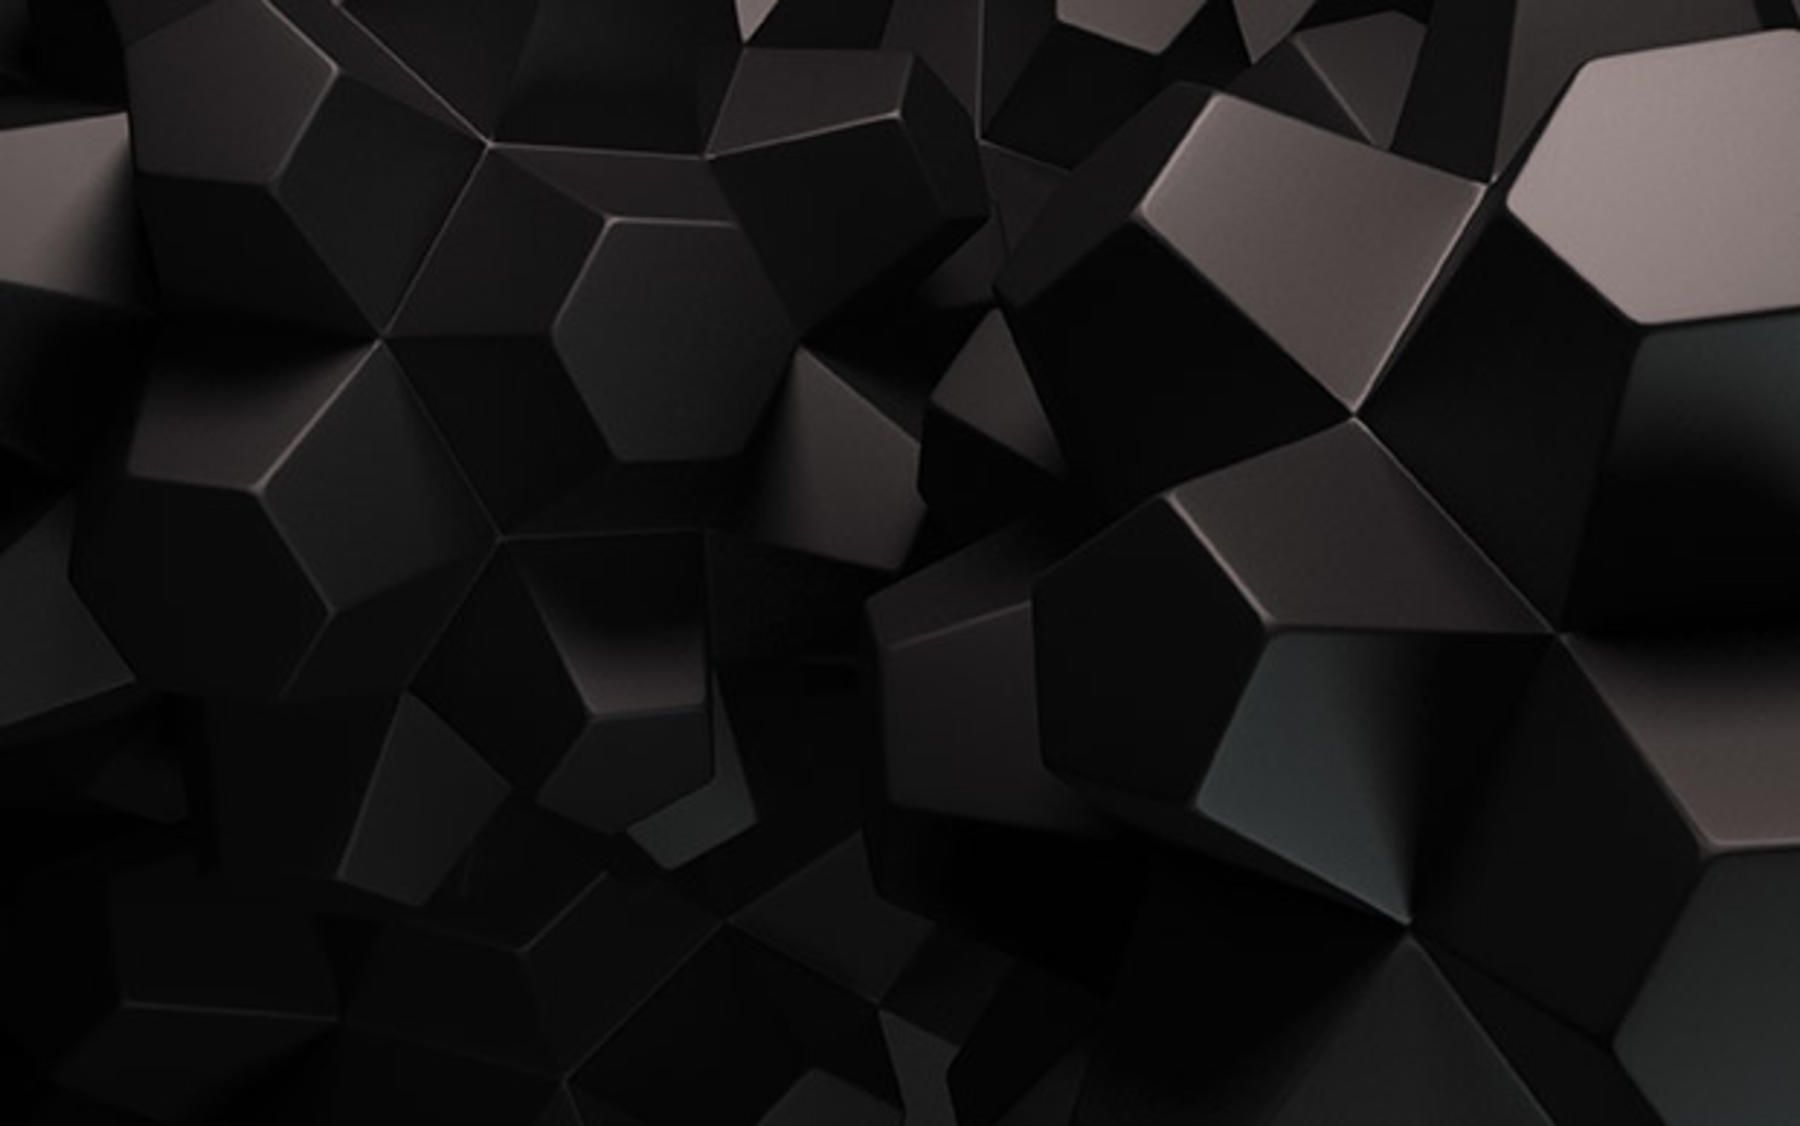 Black Blocks Wallpaper.